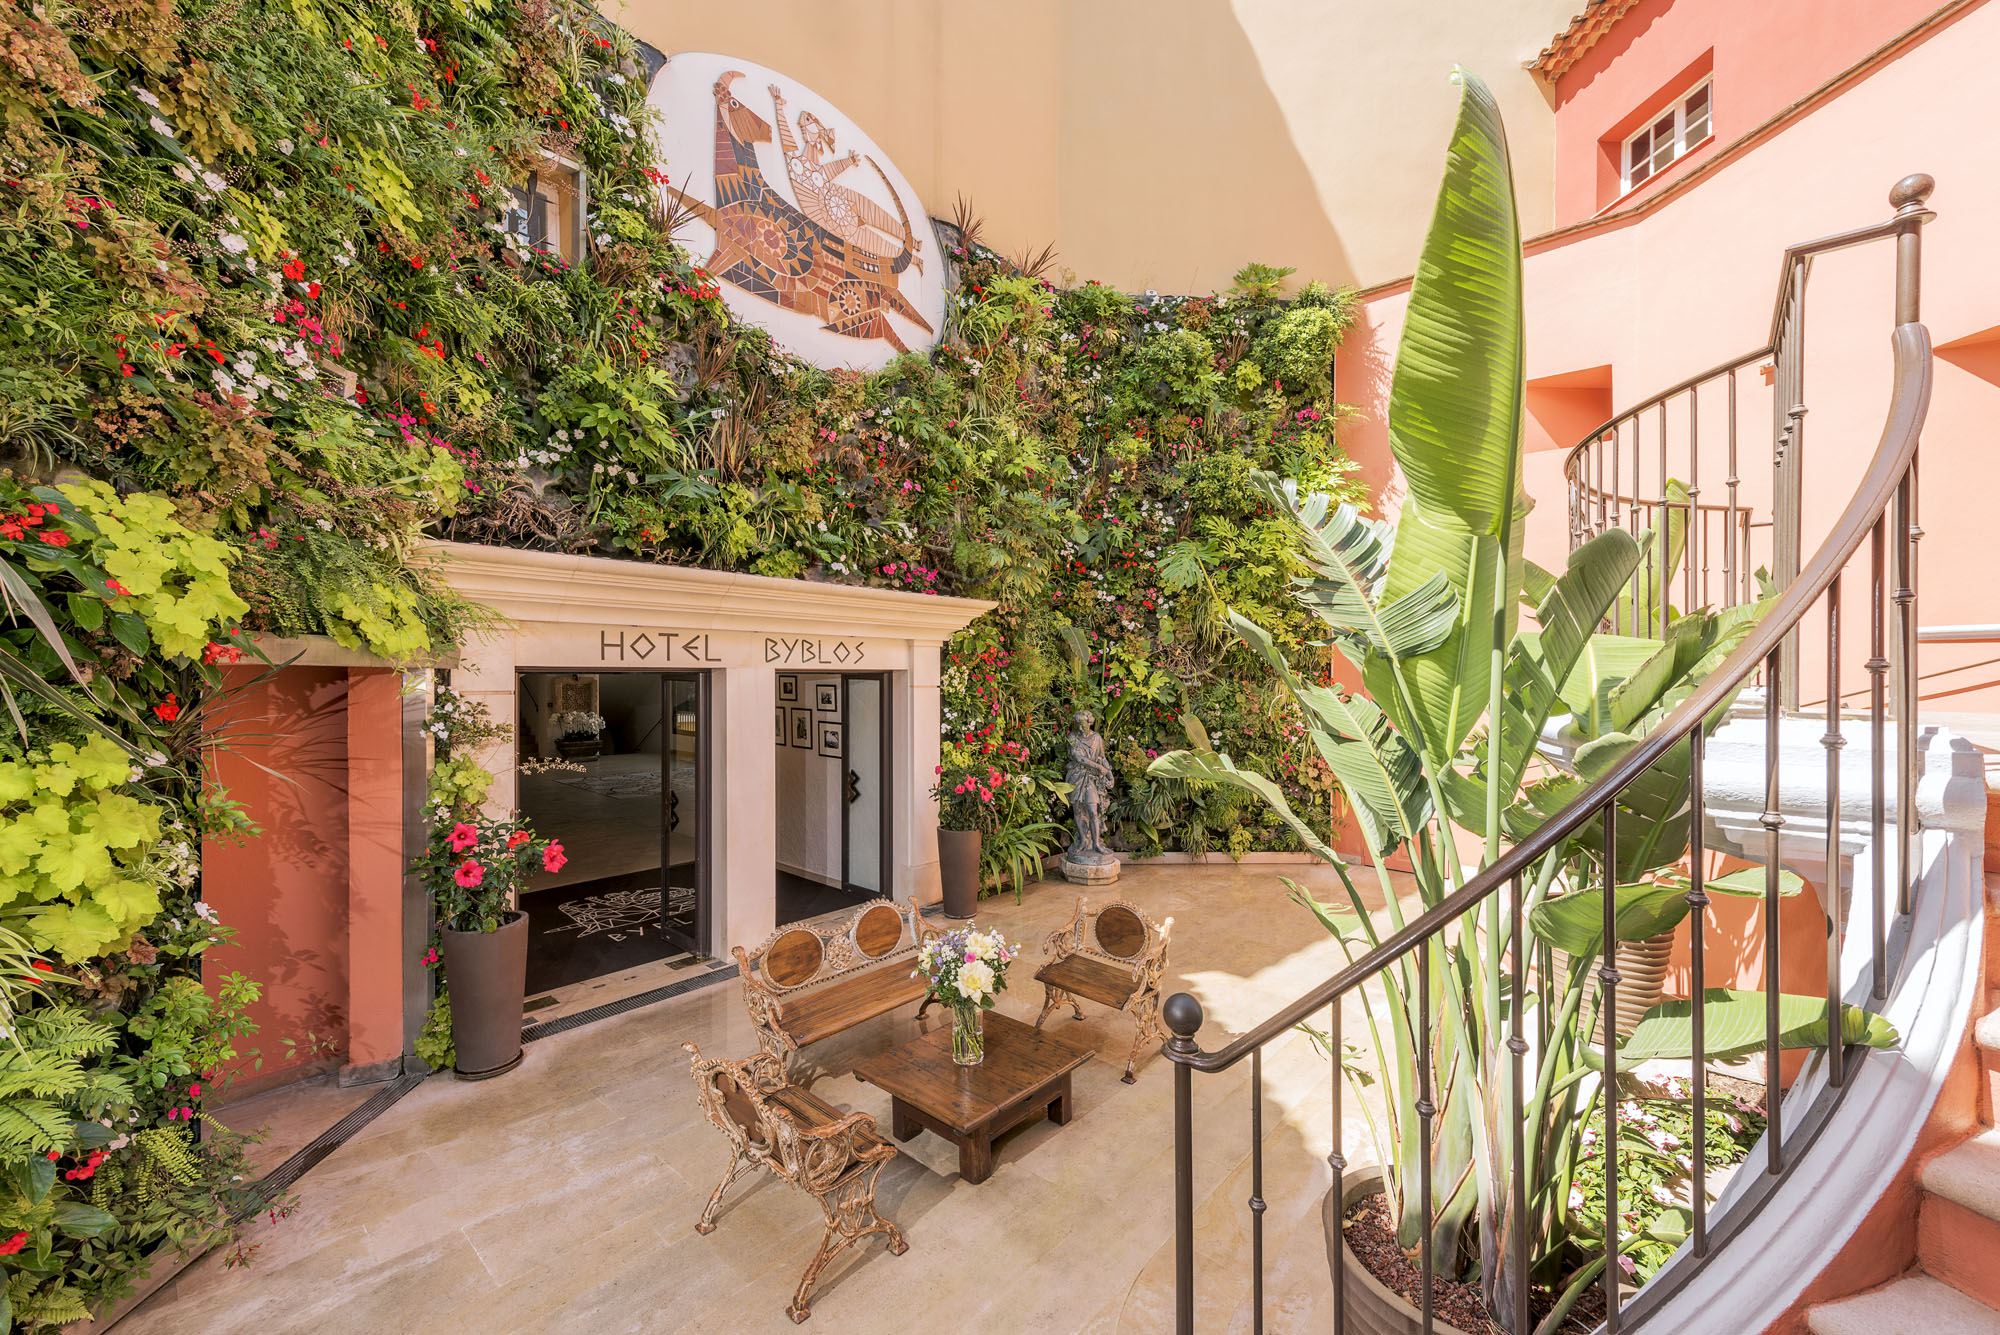 Main entrance at Hotel Byblos Saint-Tropez1 BD©Alexandre